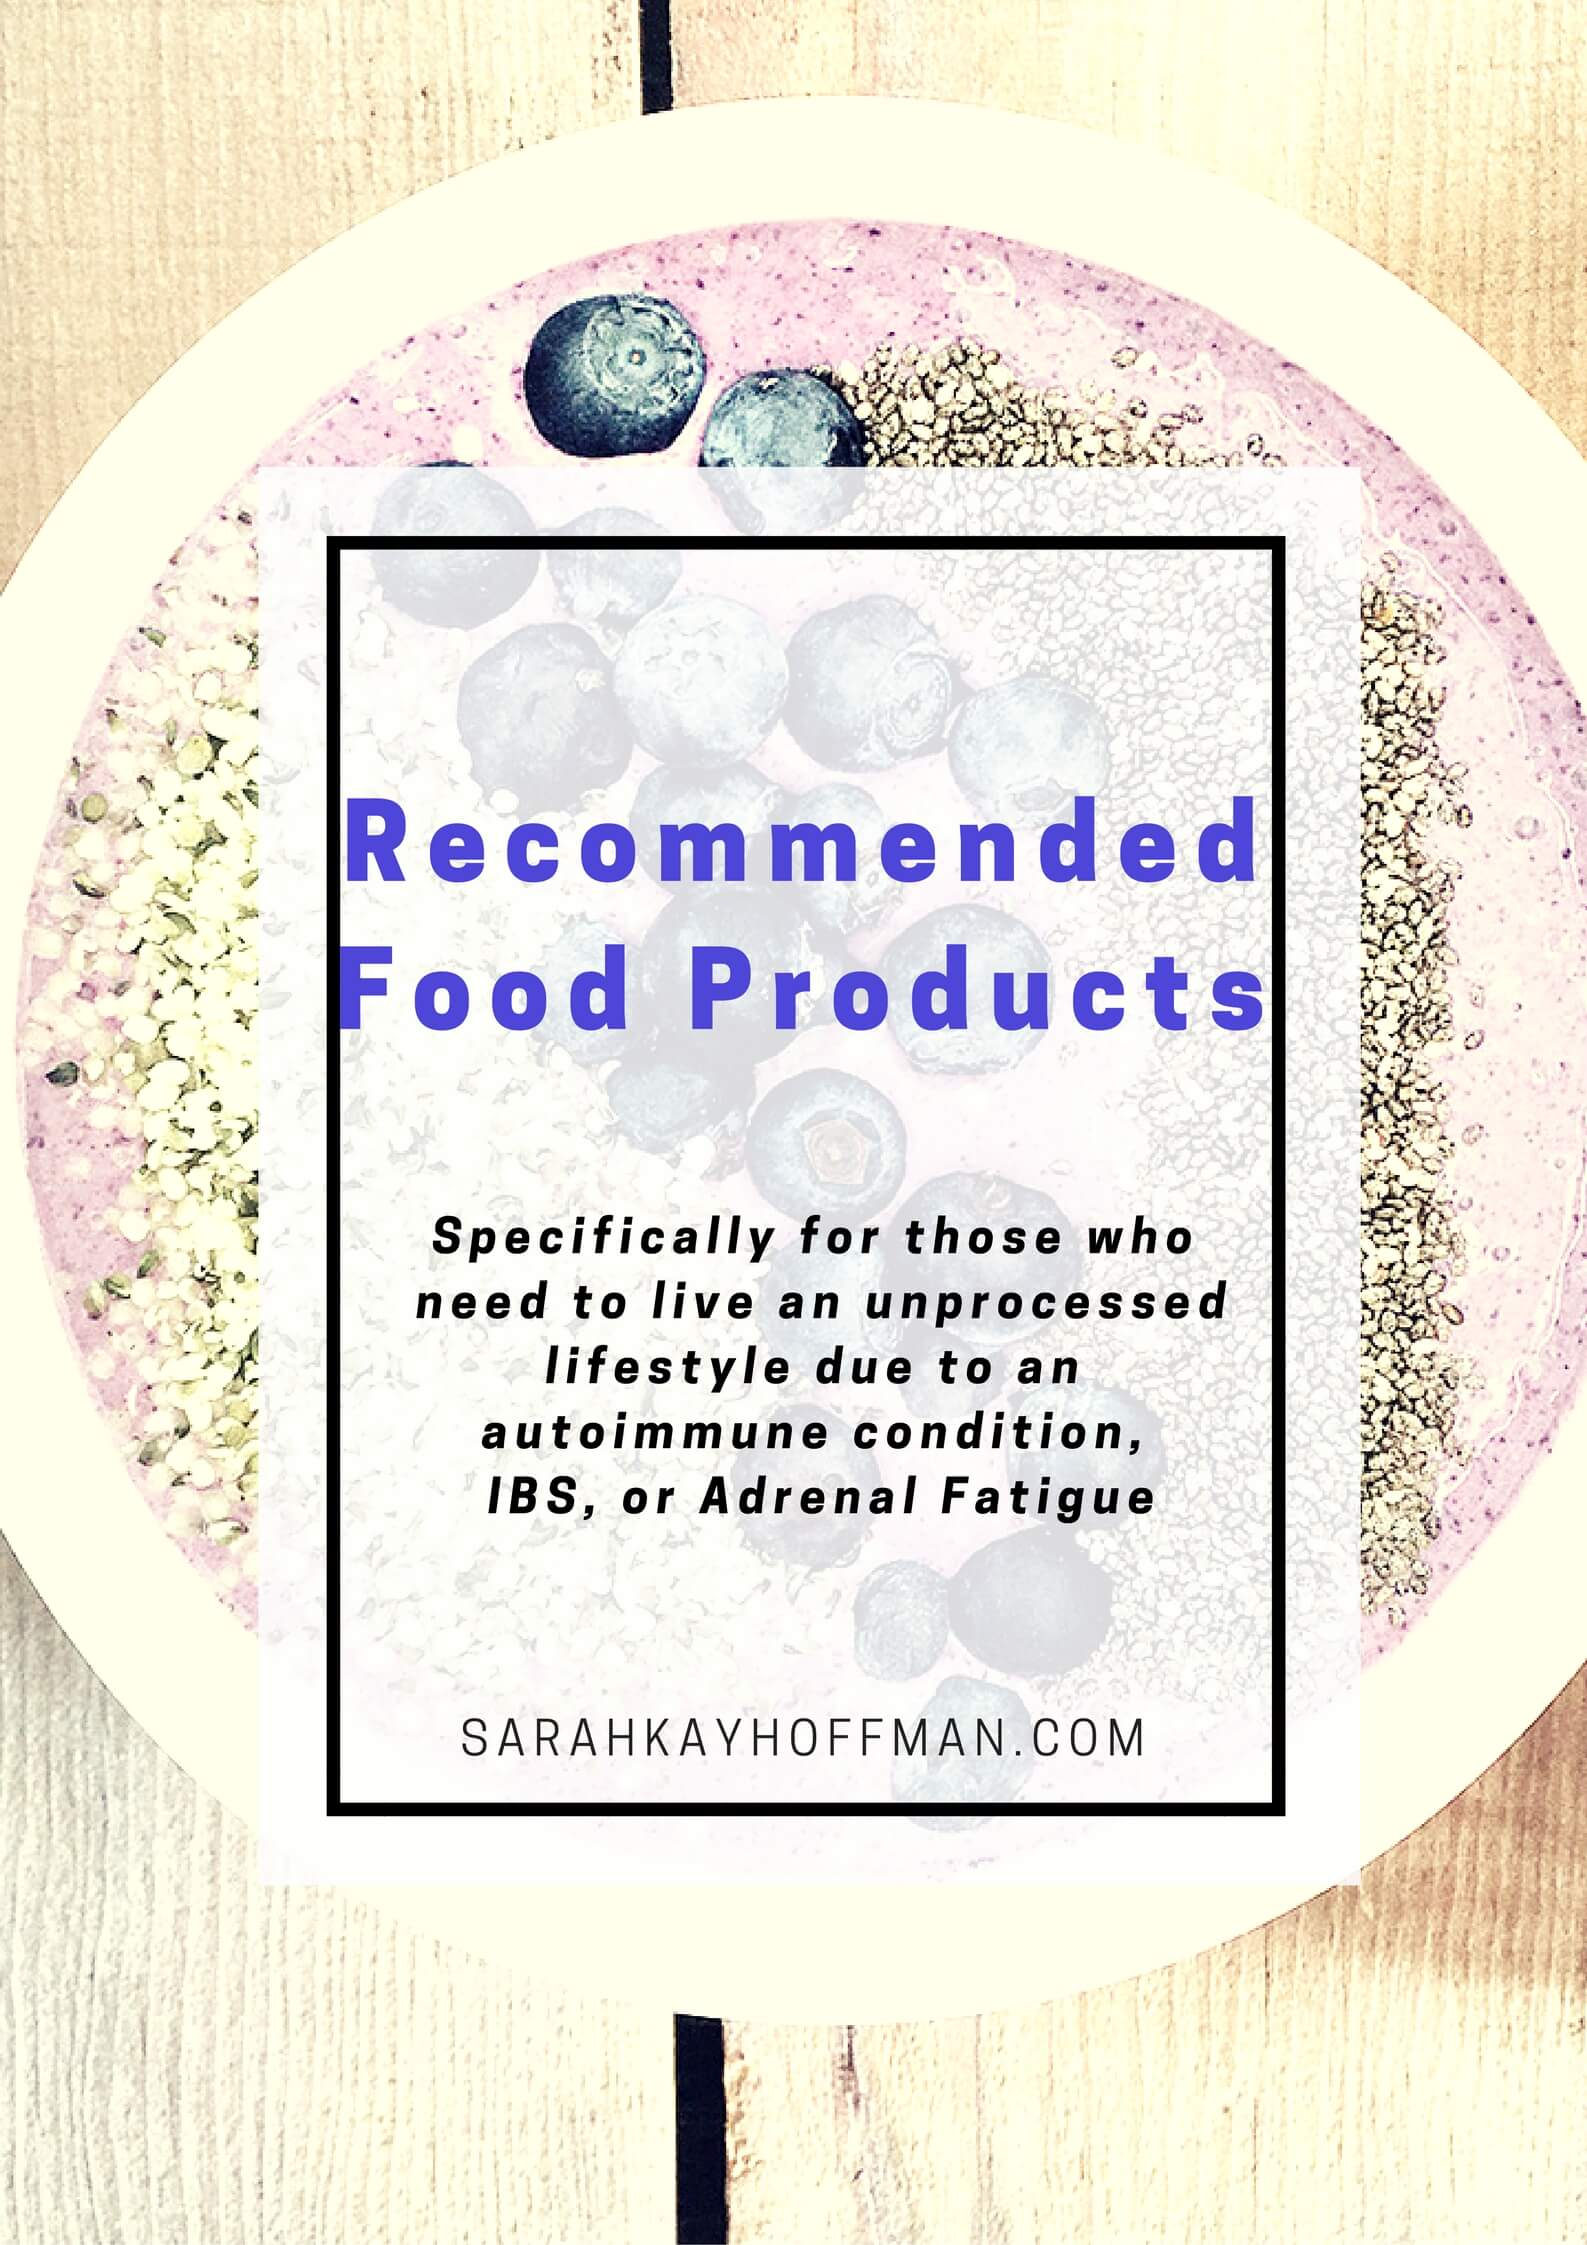 Recommended Food Products via sarahkayhoffman.com